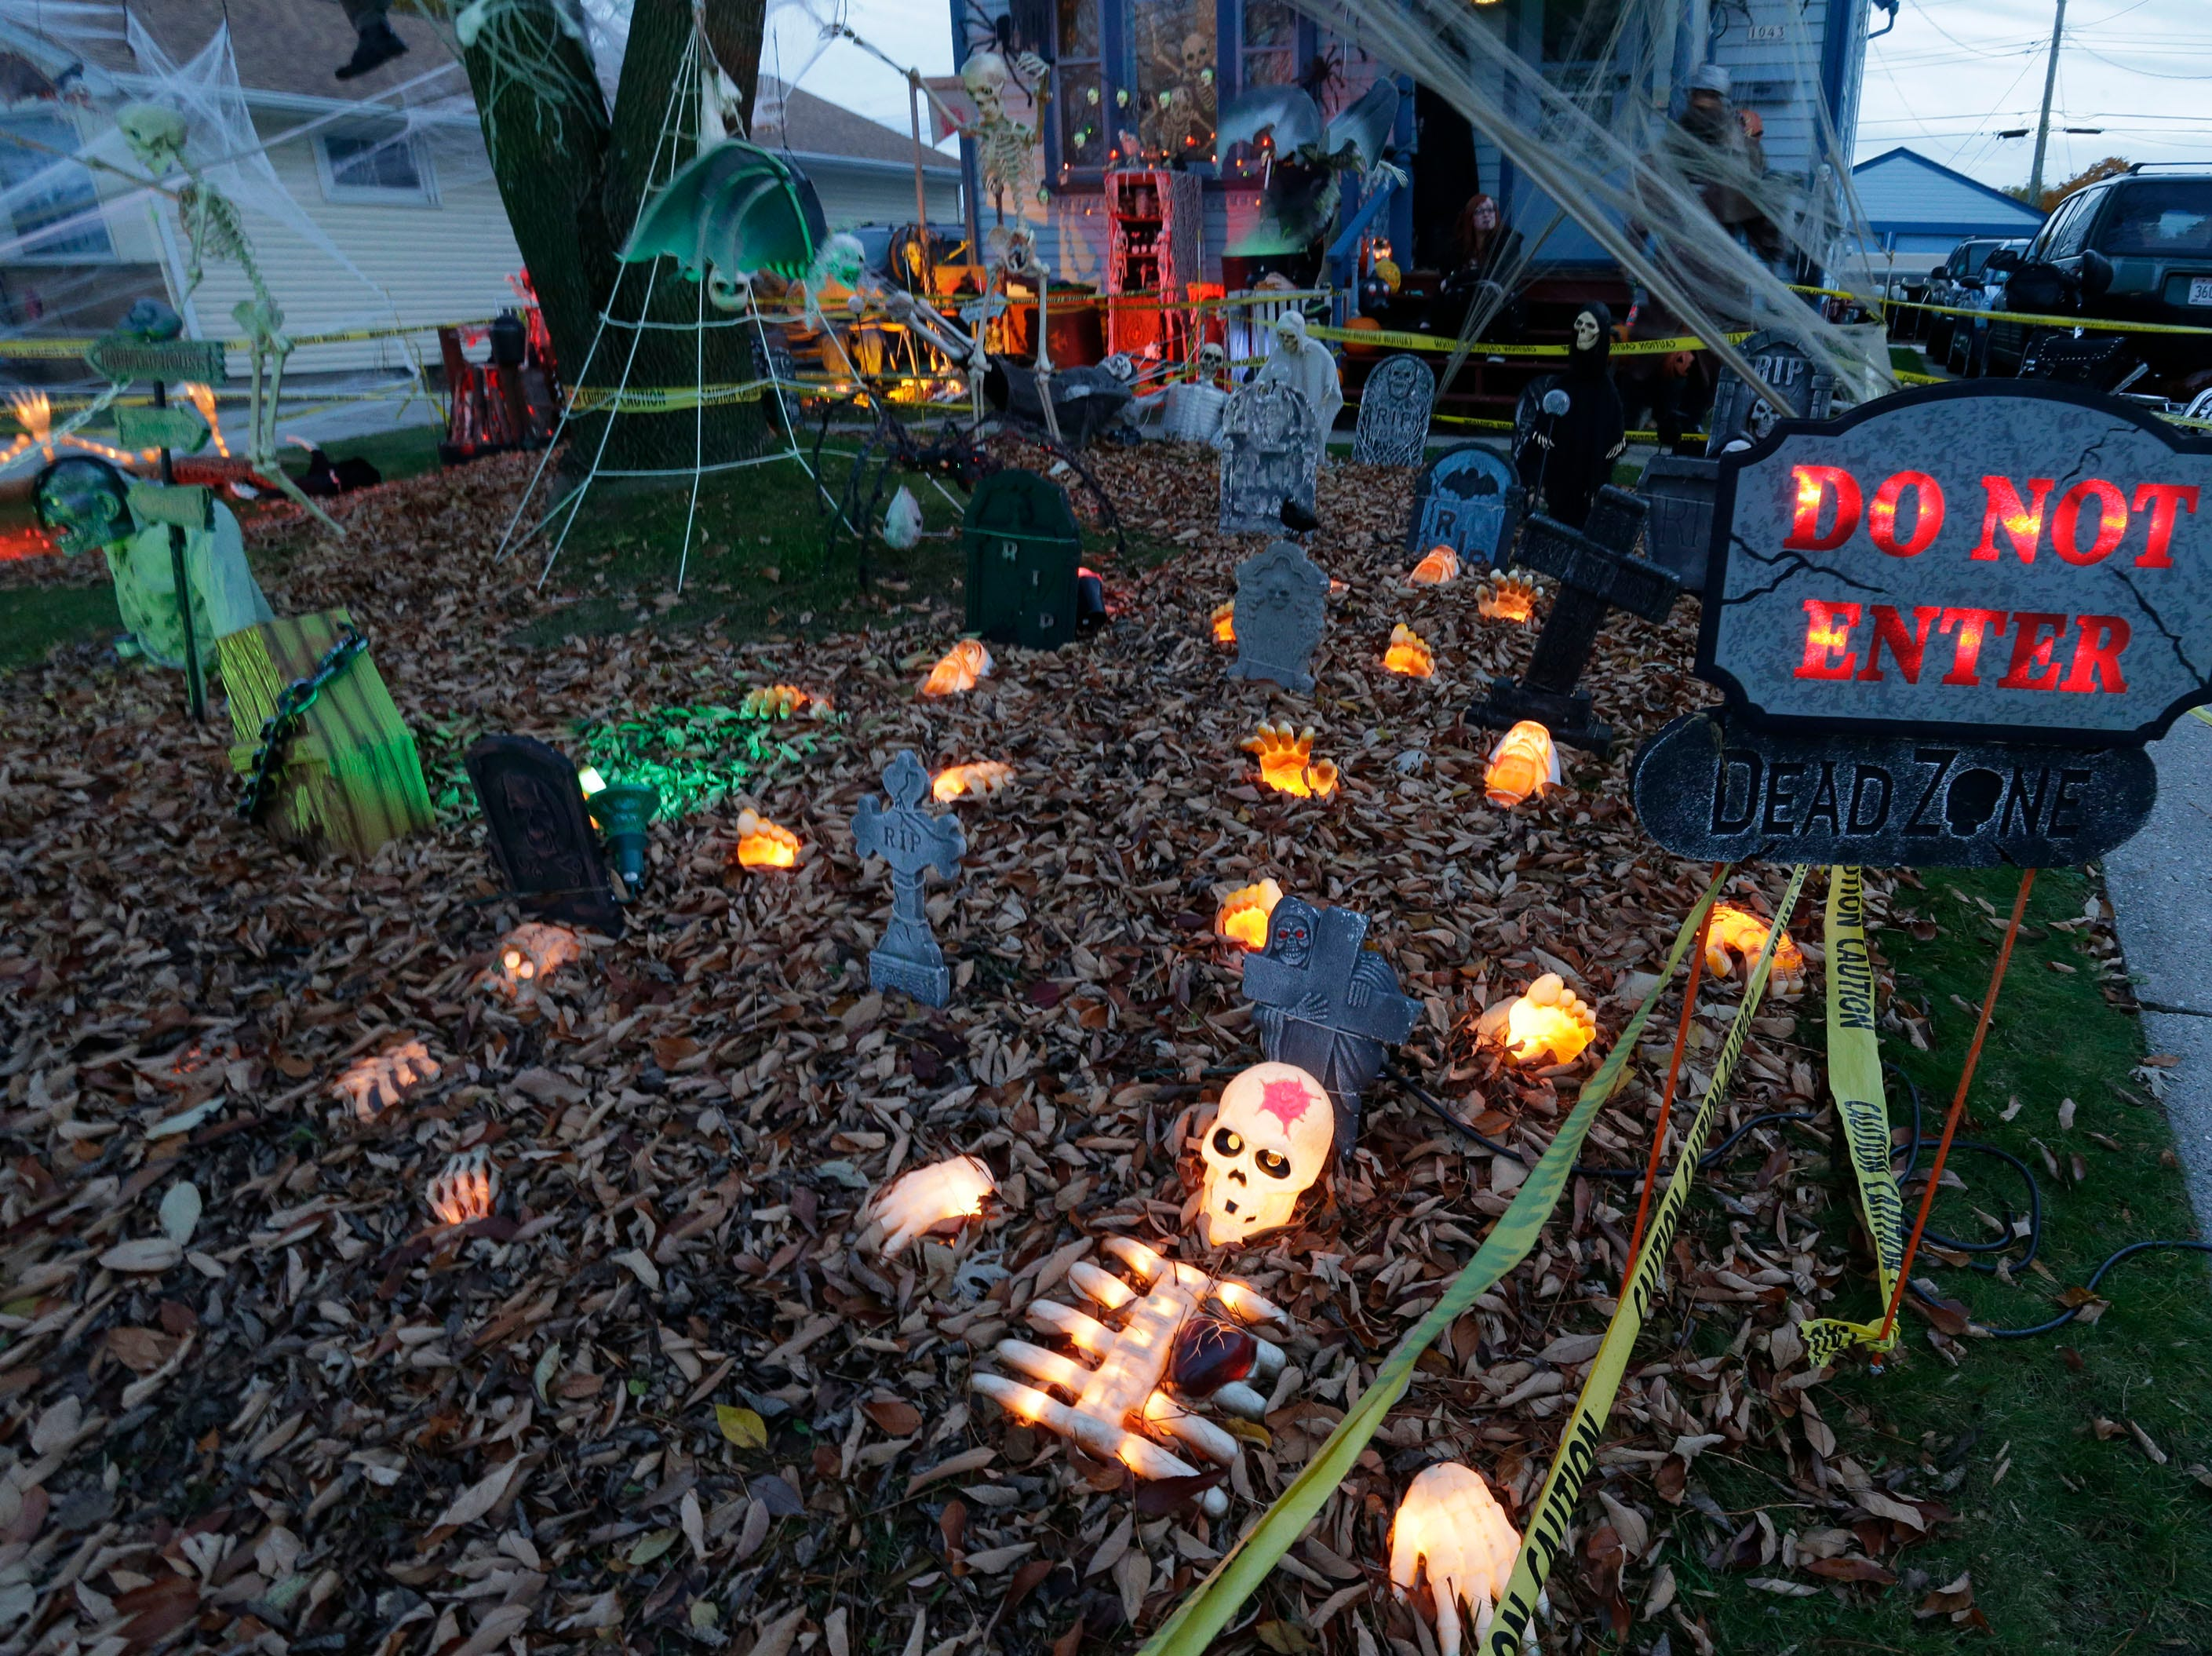 Halloween lights glow at the Ron and Jill Thill home during Trick or Treat, Wednesday, October 31, 2018, in Sheboygan, Wis.